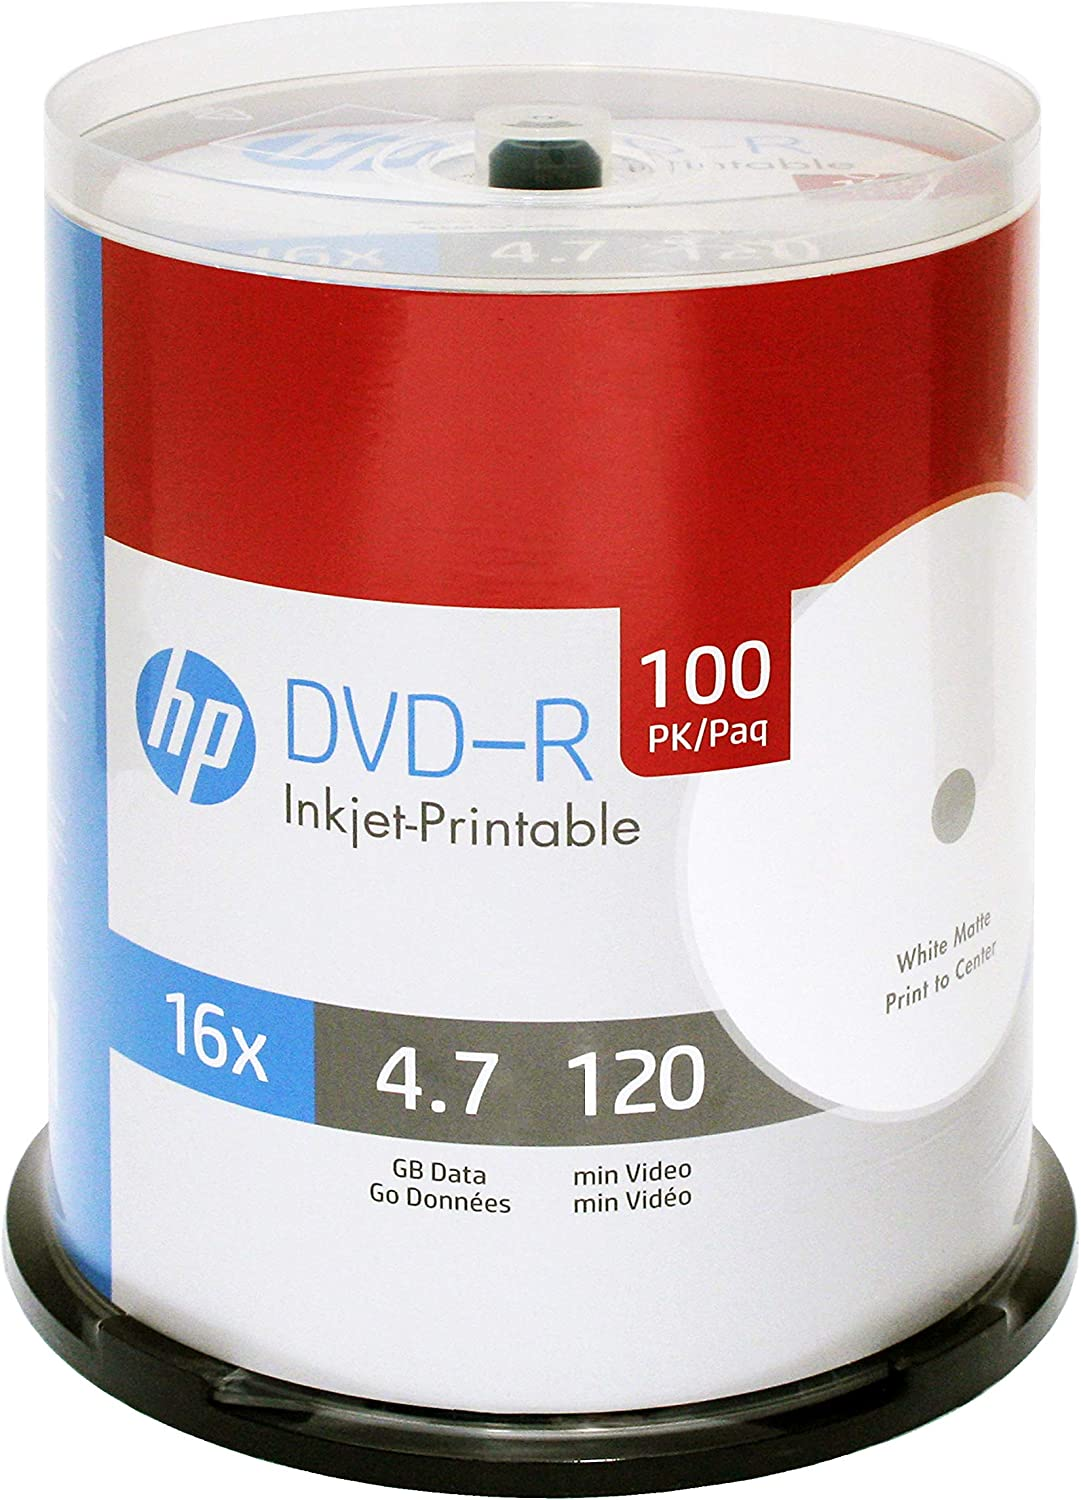 It's just a graphic of Ink Jet Printable Dvd in r dl